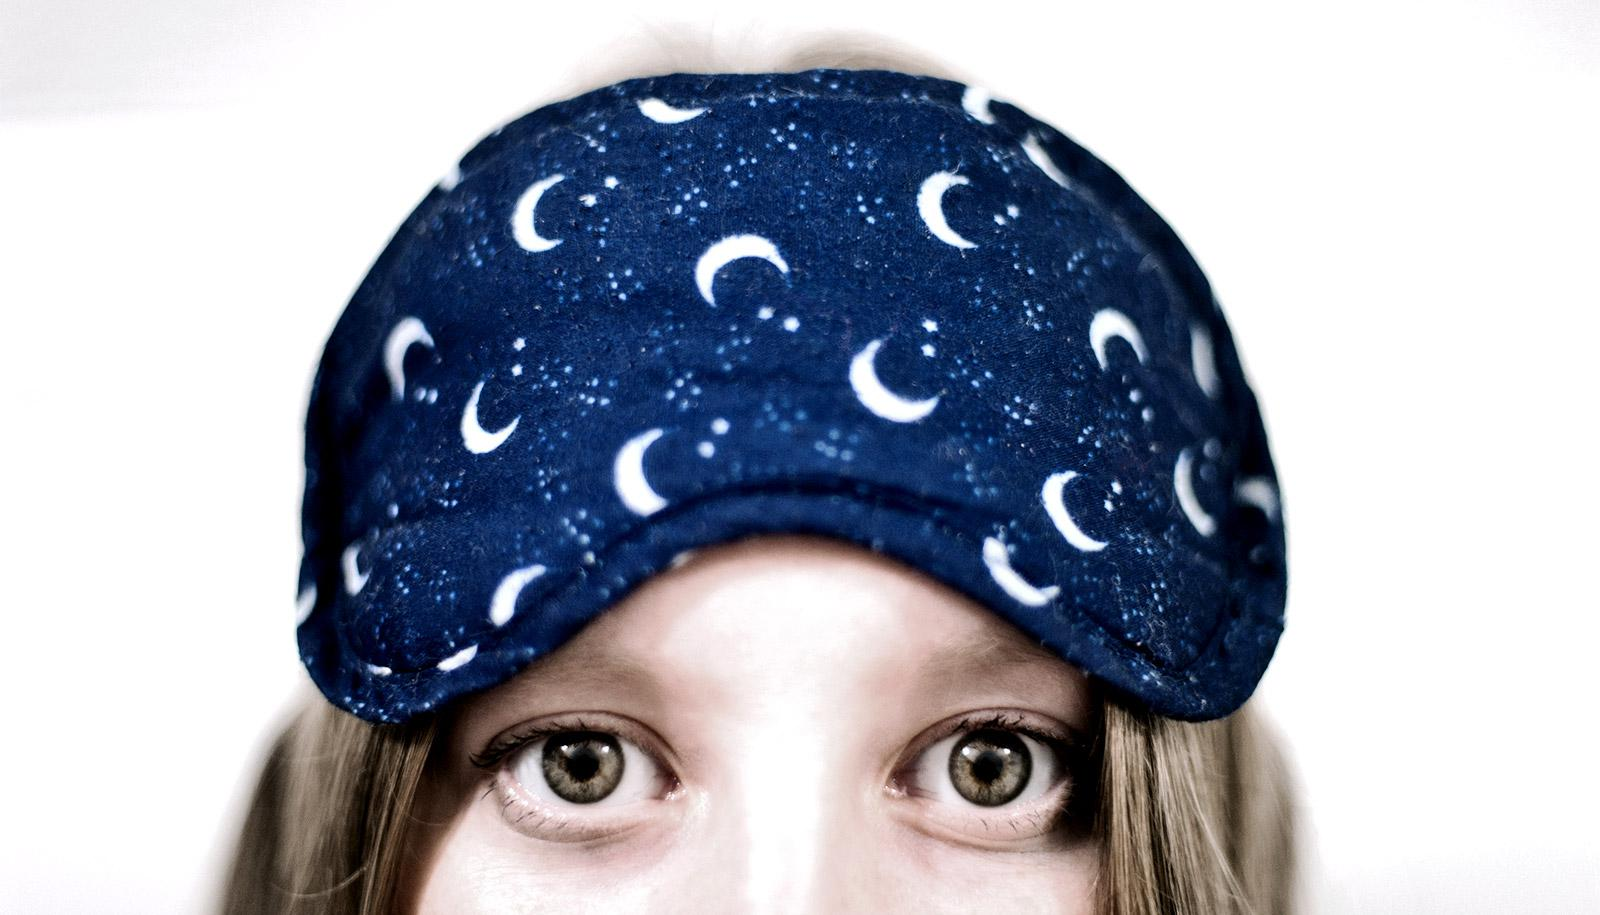 A woman wears a sleep mask on her forehead while her eyes are wide with insomnia